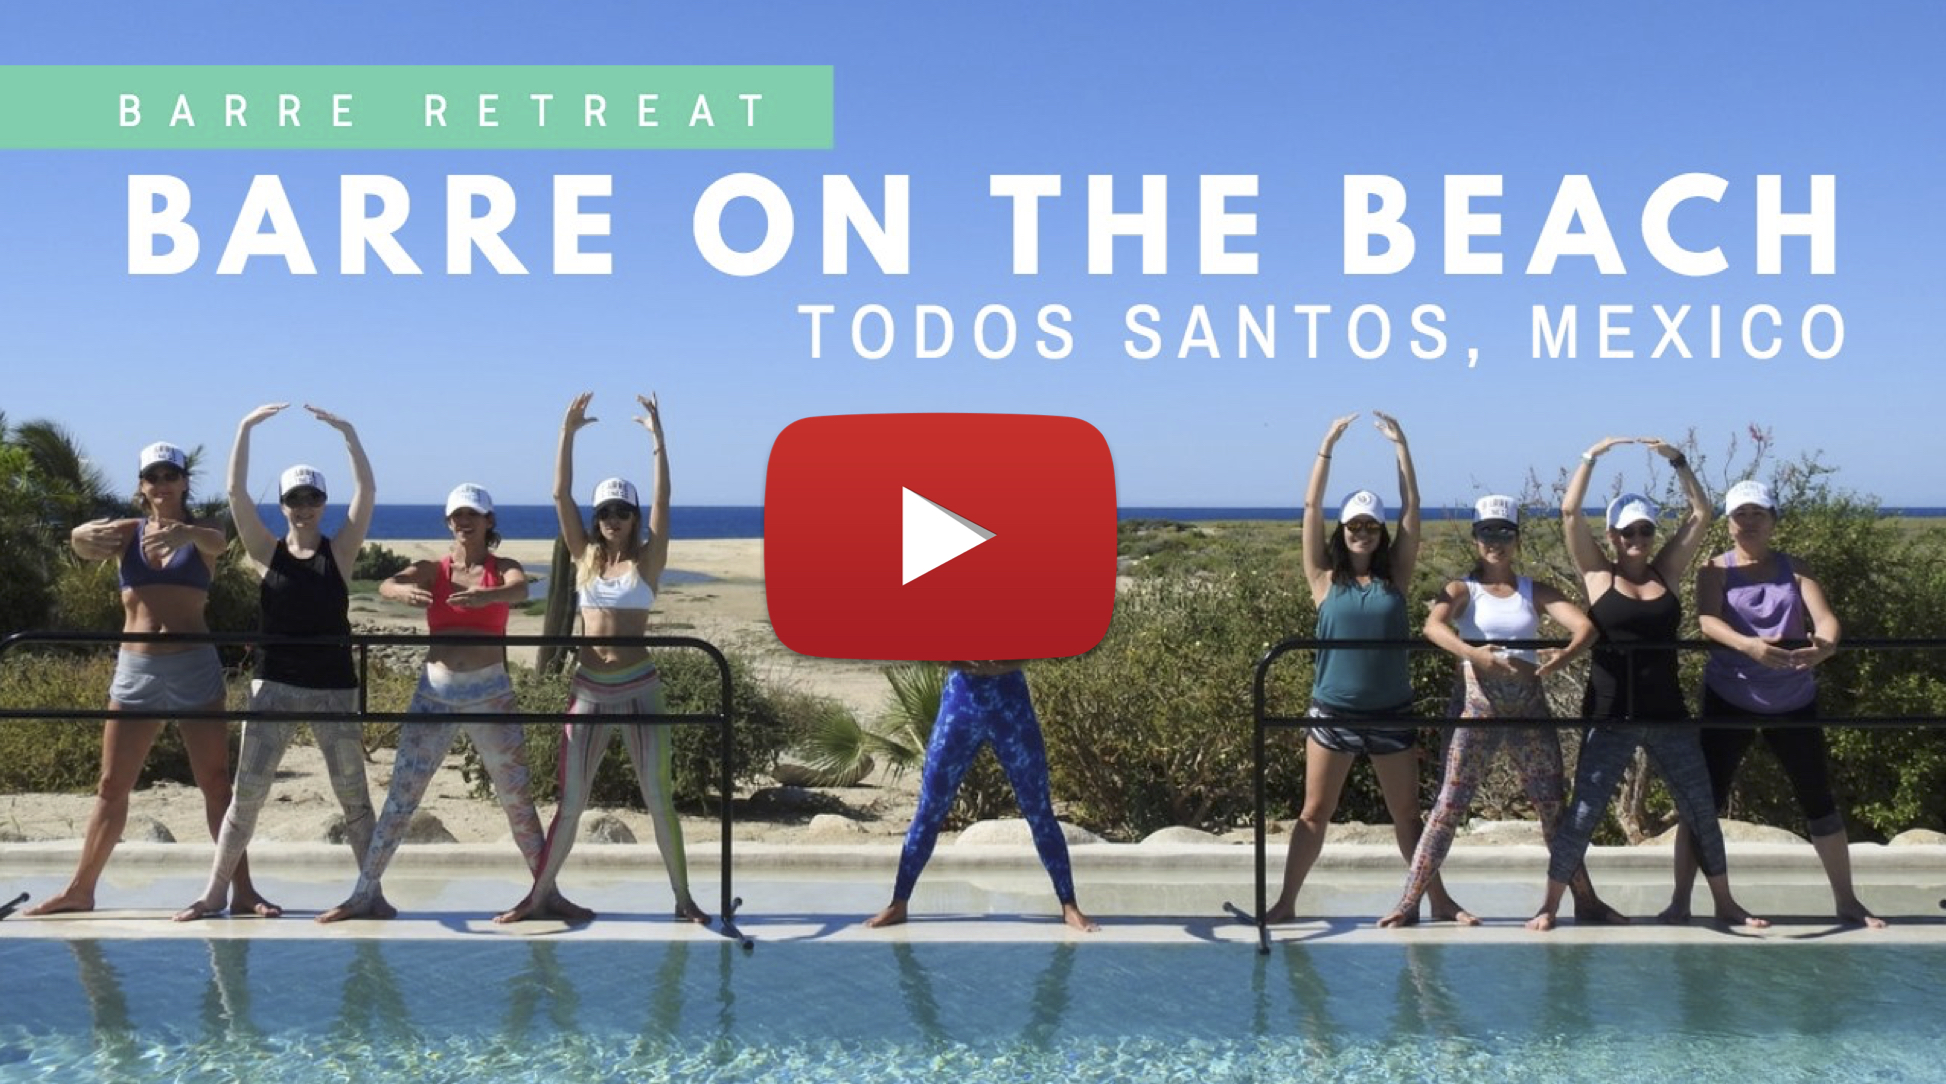 Barre fitness retreat Mexico